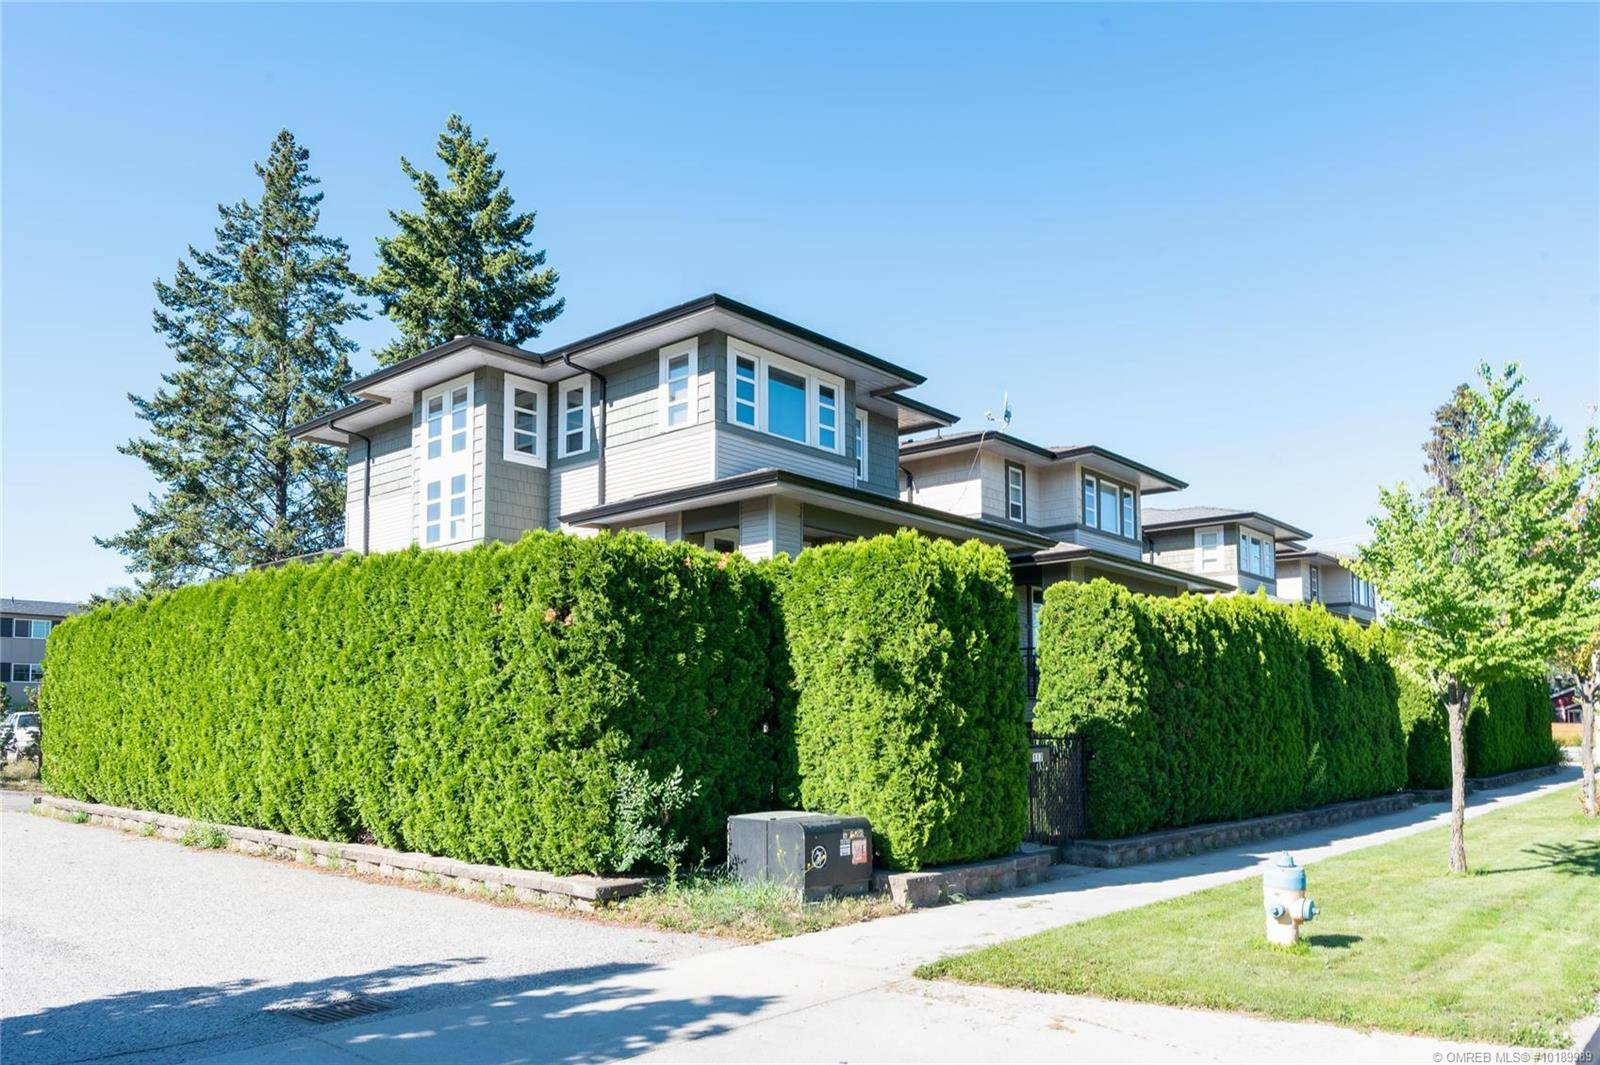 House for sale at 109 Mccurdy Rd Kelowna British Columbia - MLS: 10189989